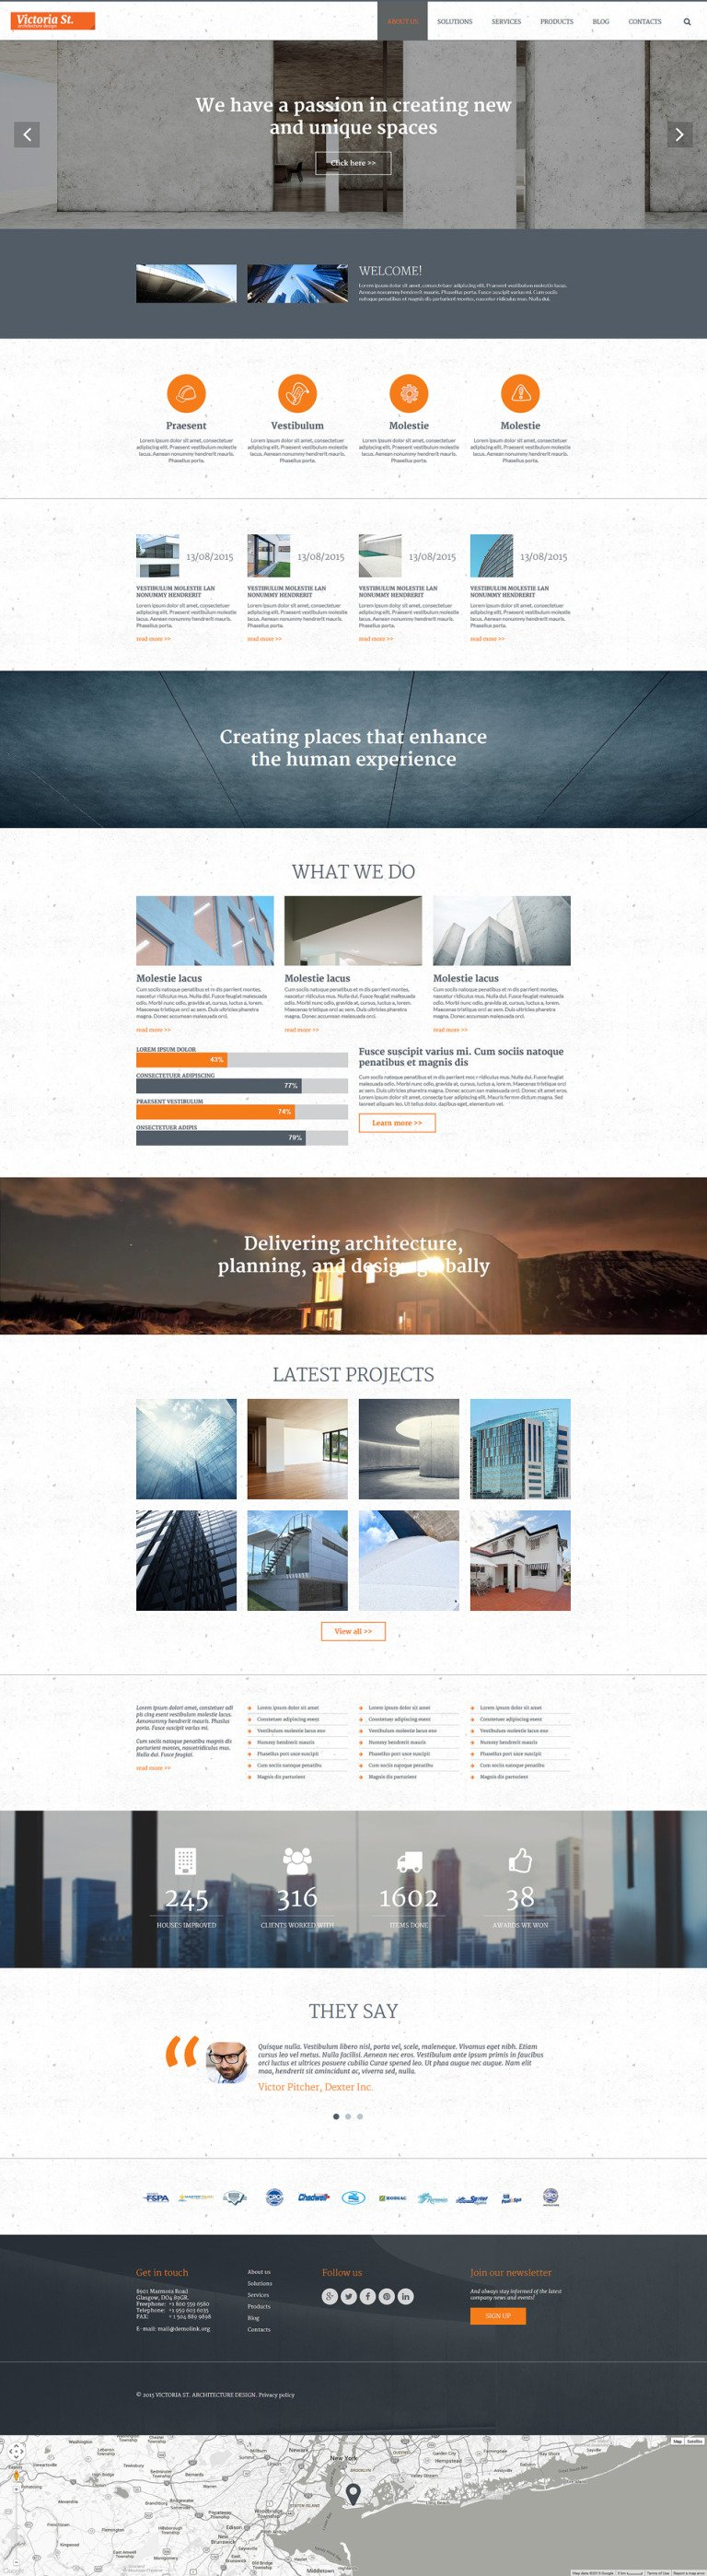 Architecture Design Joomla Template New Screenshots BIG